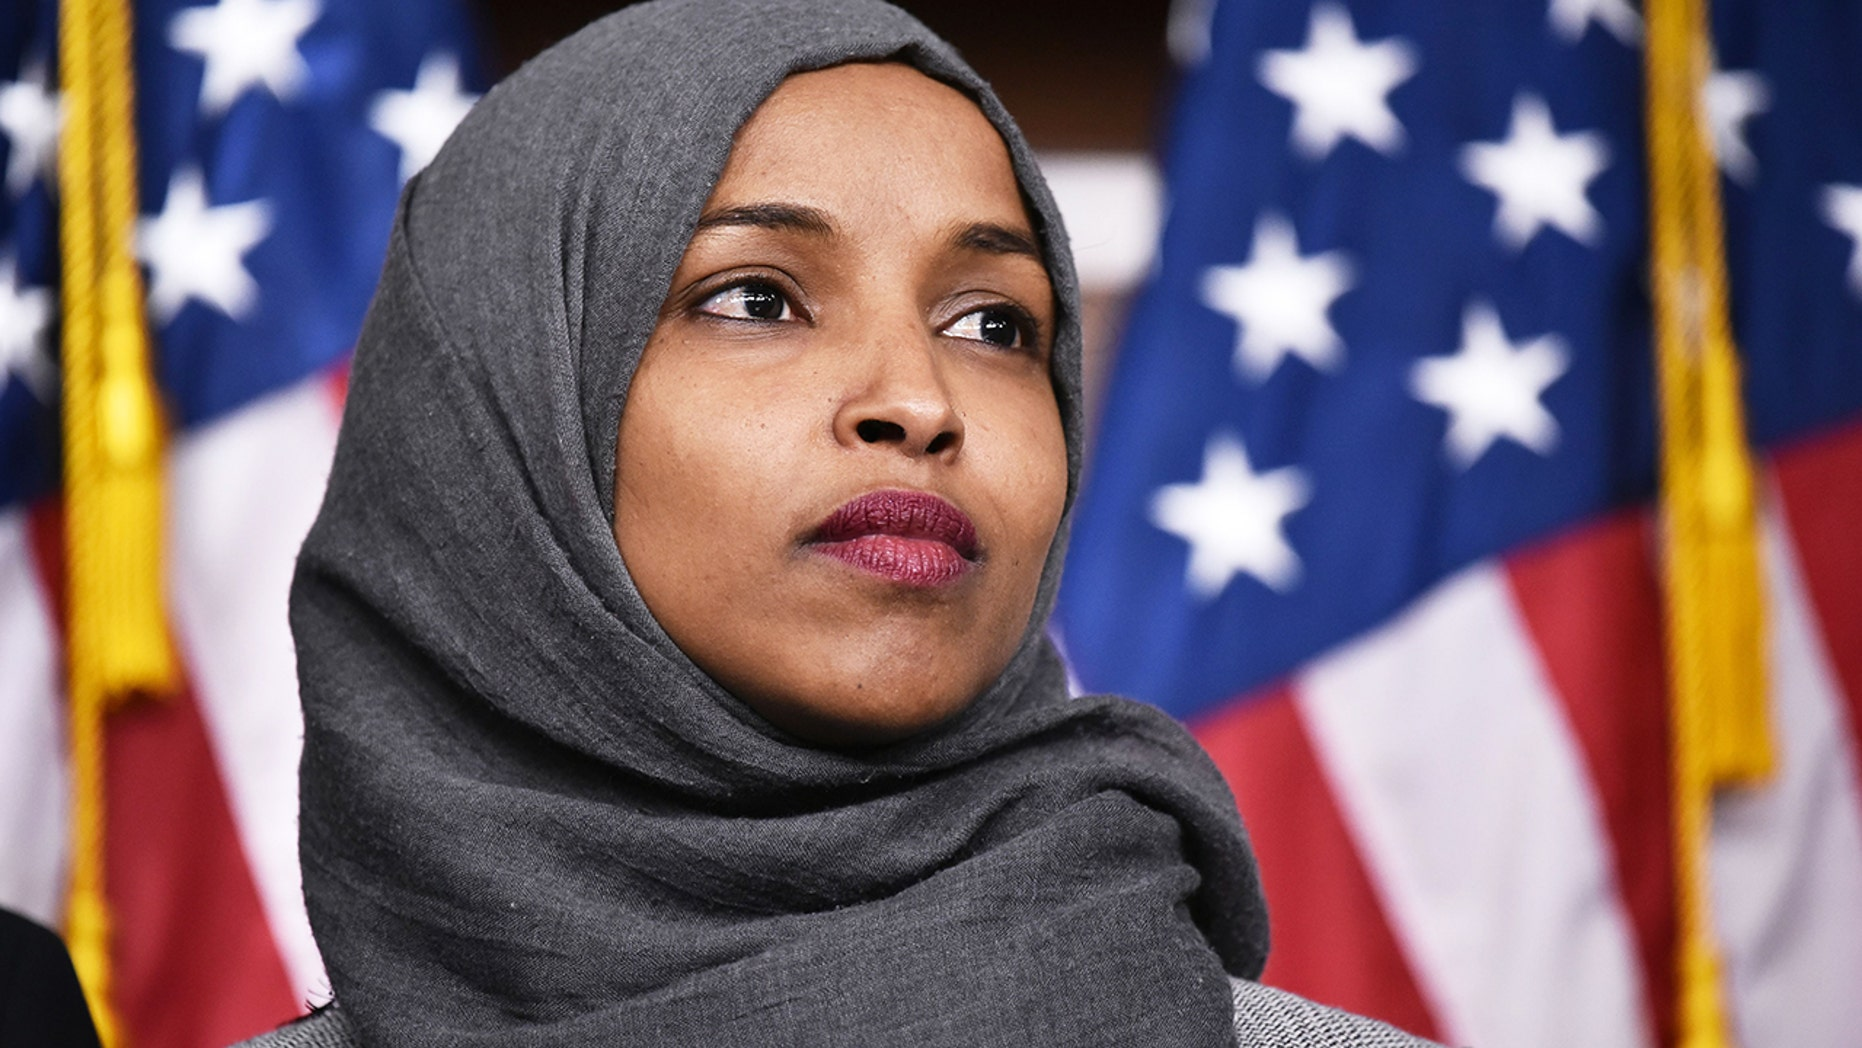 Rep. Ilhan Omar (D-Minn.) had asked Twitter to remove the president's April 12 tweet, saying it had sparked death threats against her.